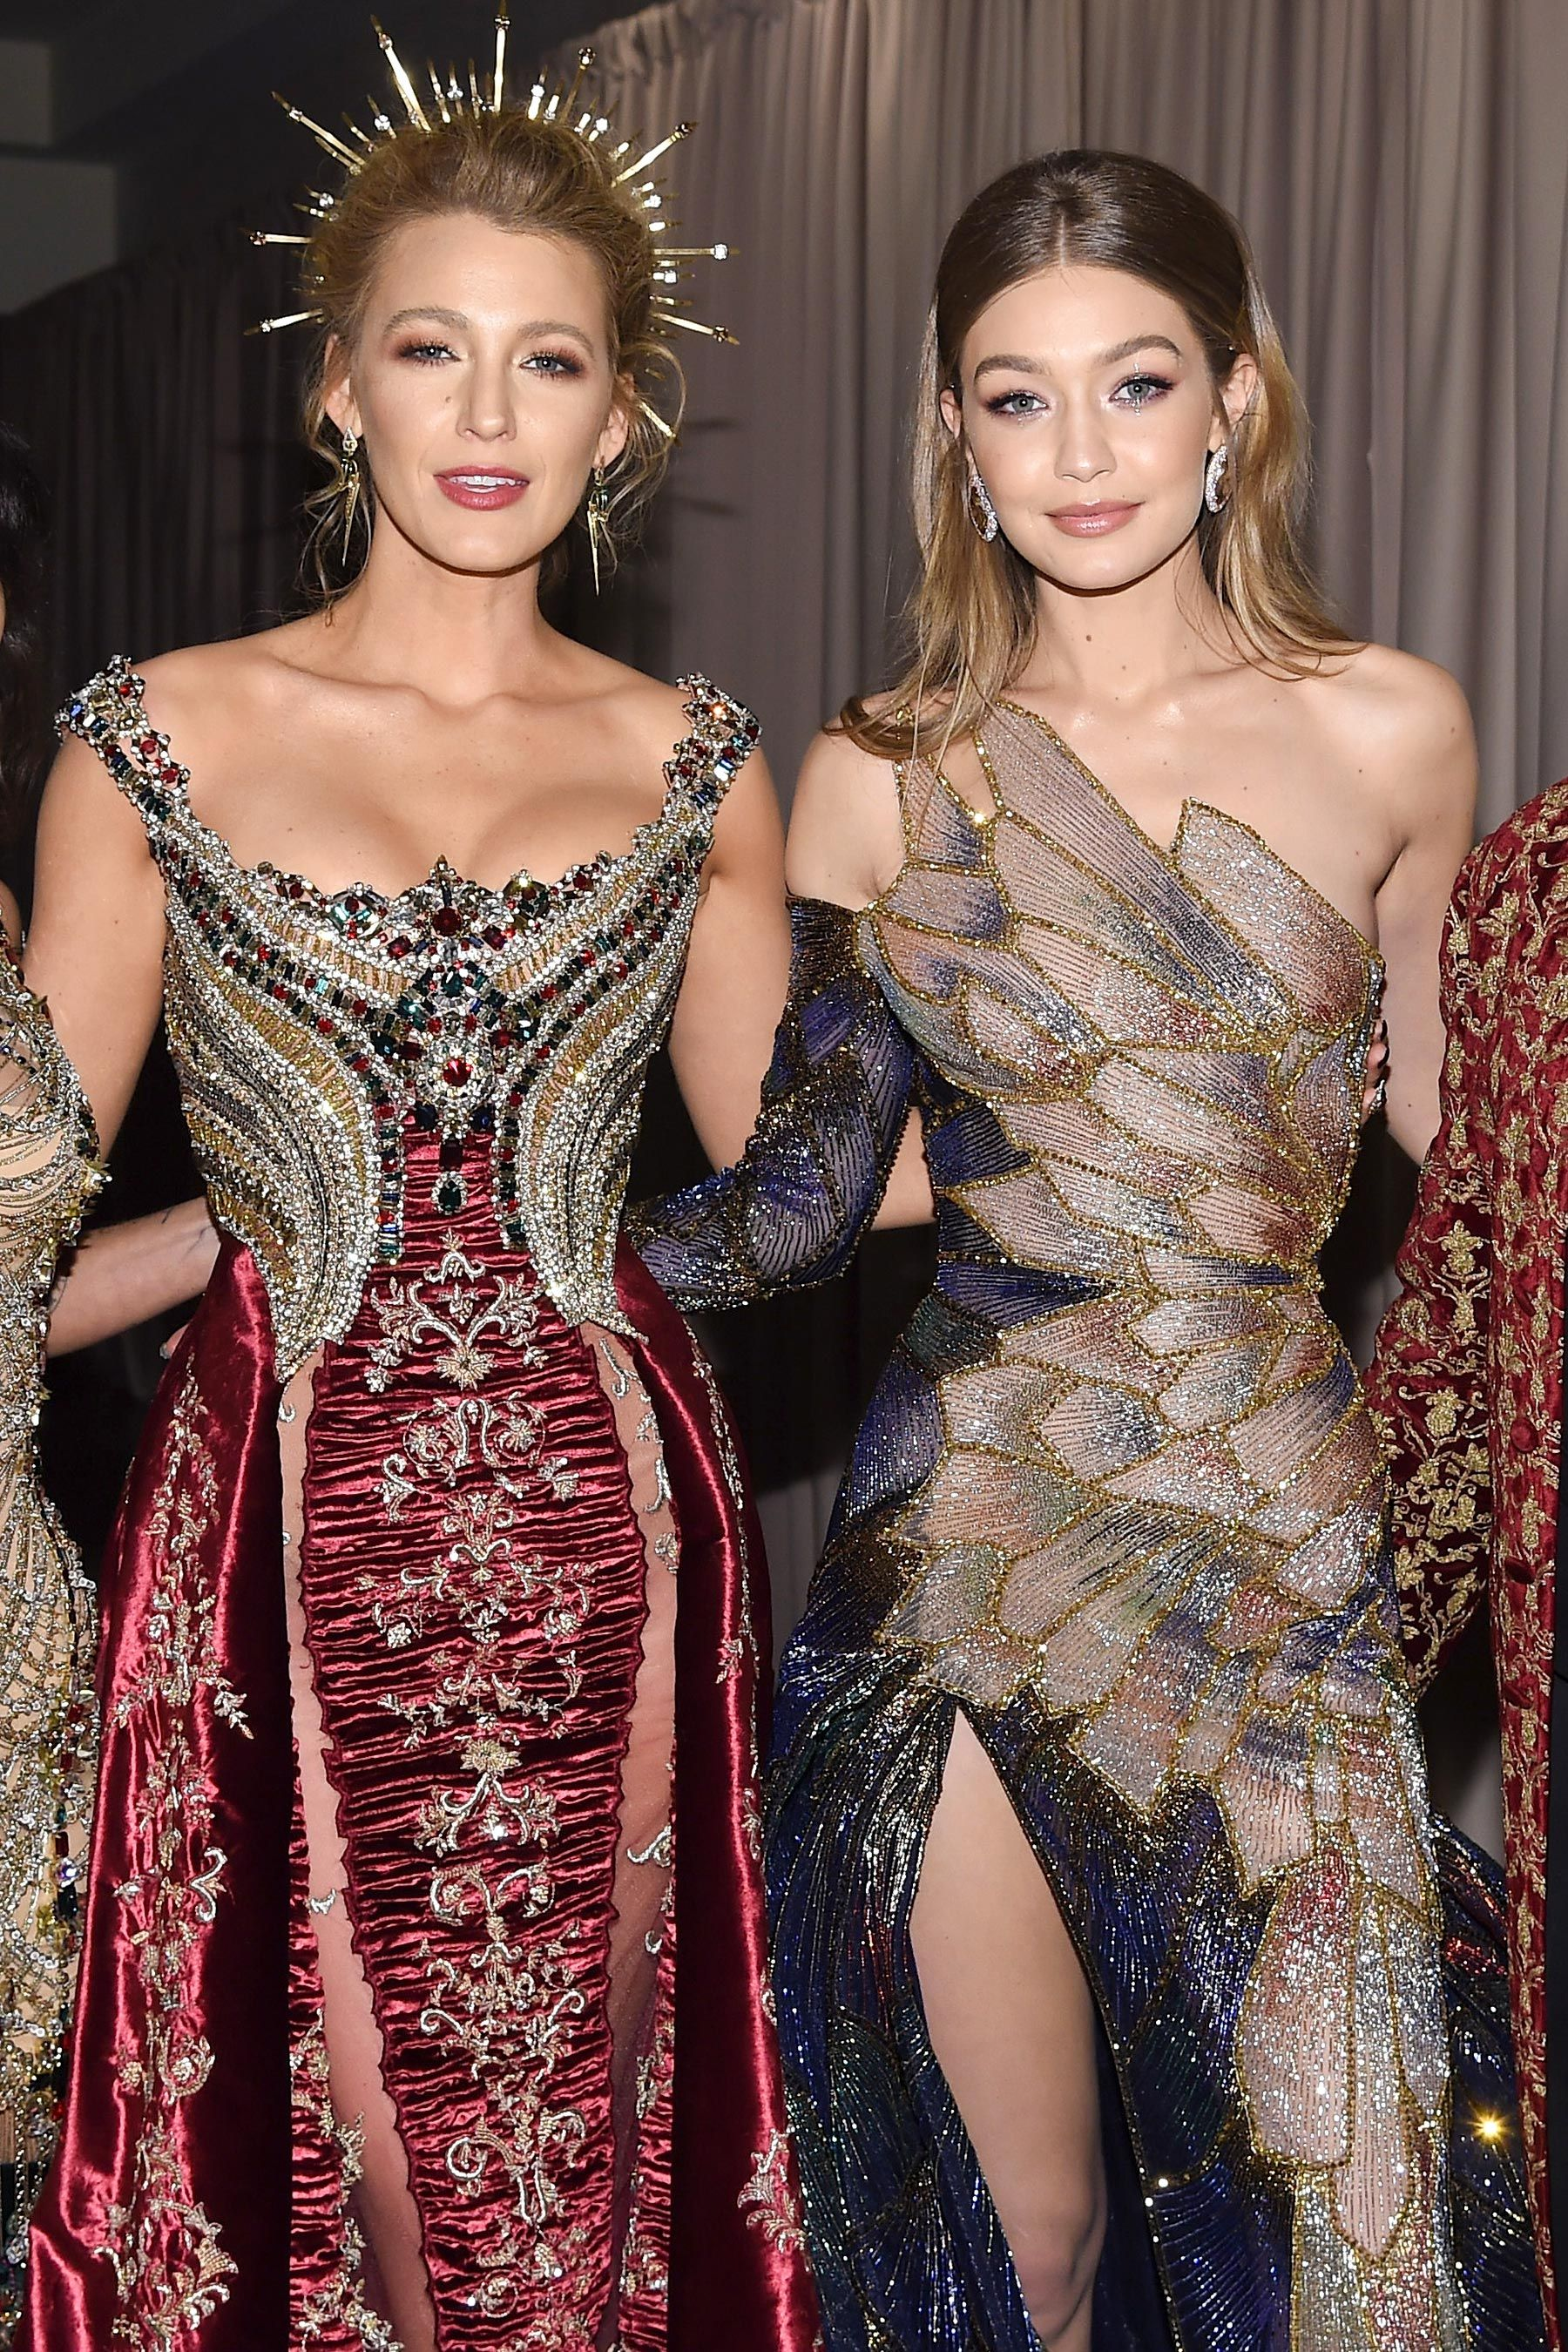 Gigi Hadid Wishes 'Queen' Blake Lively a Happy Birthday with Sweet Photo of the Pregnant Star – Potre